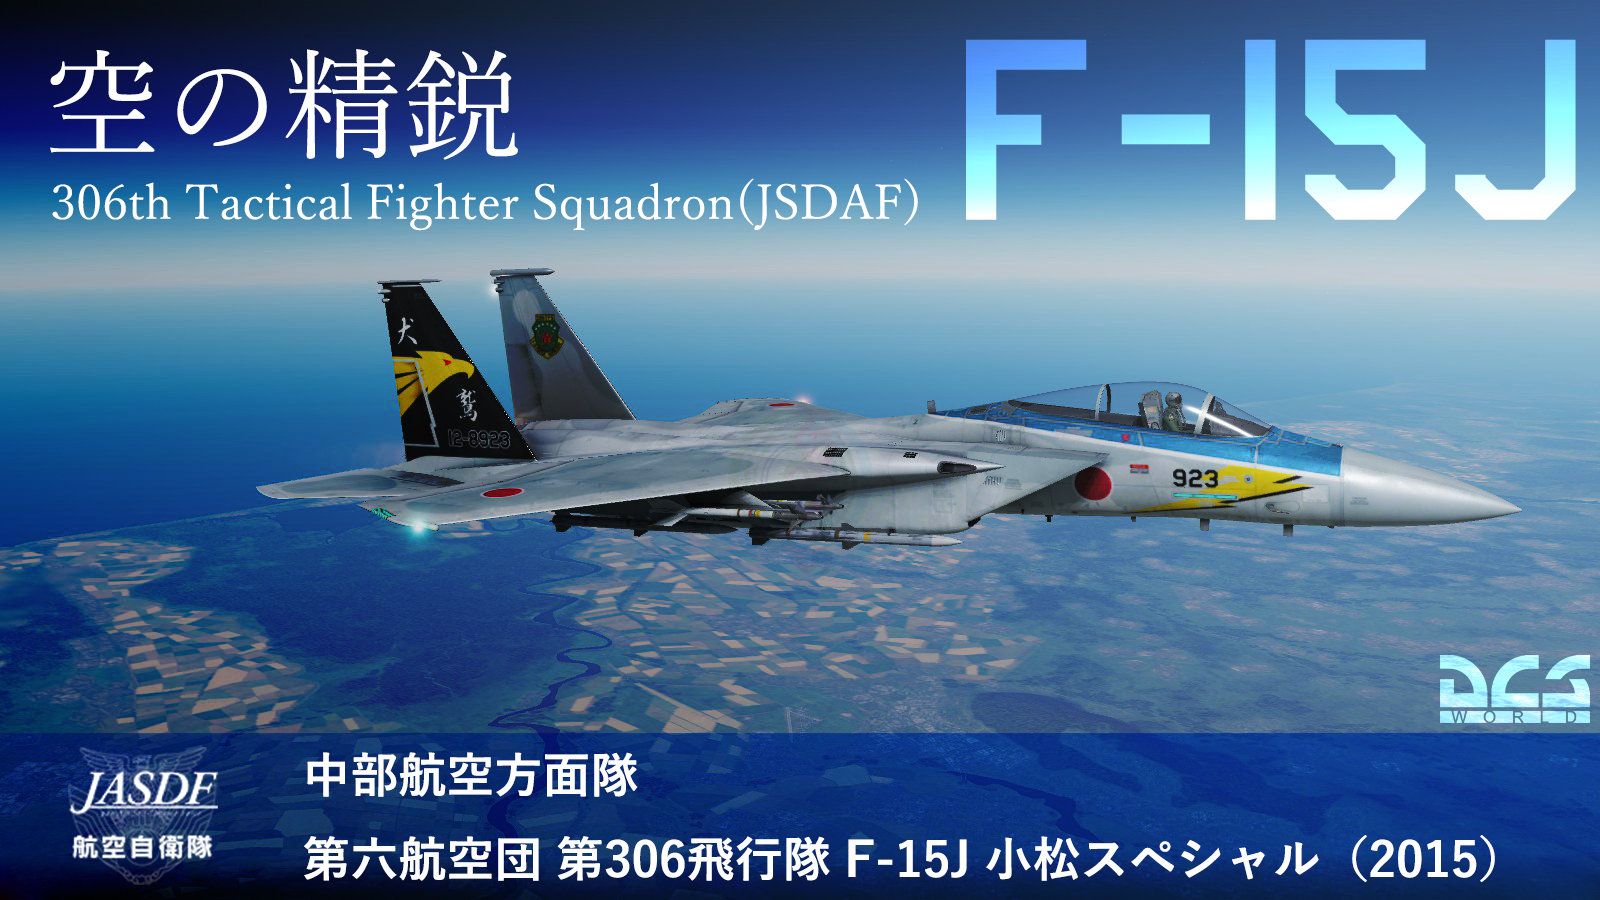 [Ver.2.0]306th Tactical Fighter Squadron of the Japan Air Self-Defense Force (JSDAF)